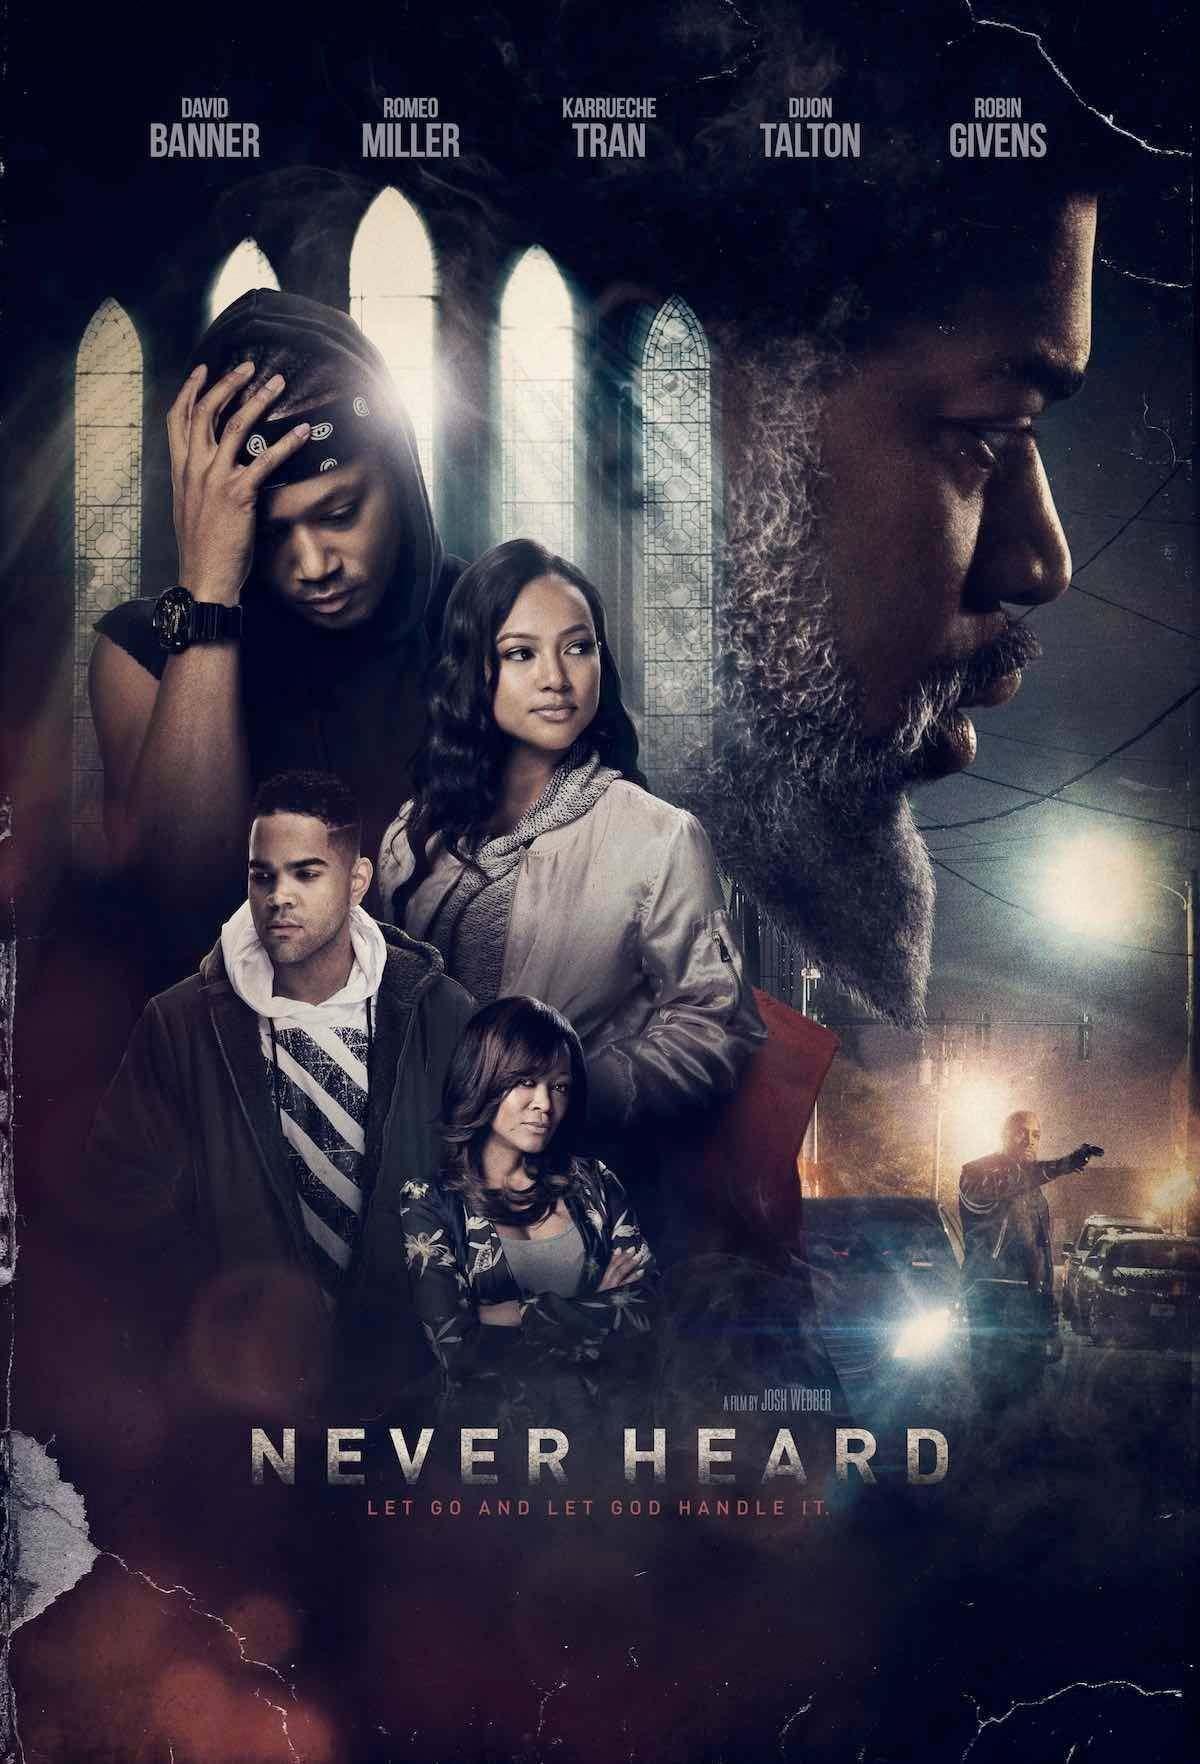 NeverHeard My quick read movie review and rating is now